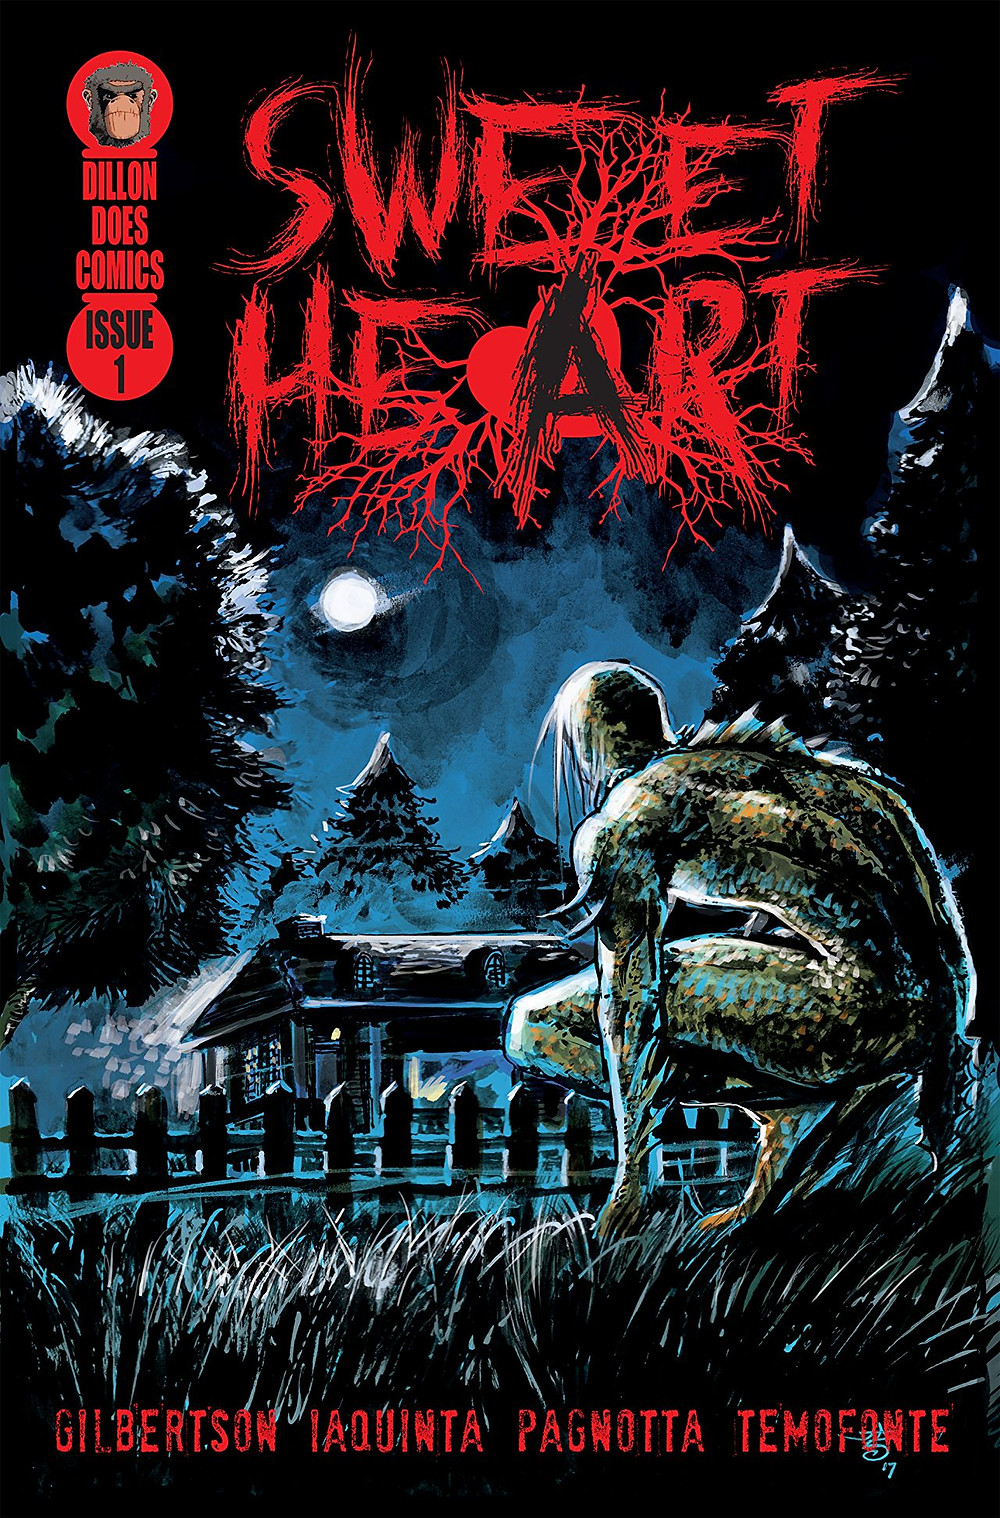 Sweet Heart, Issue #1, cover, Self-published, Gilbertson/Iaquinta